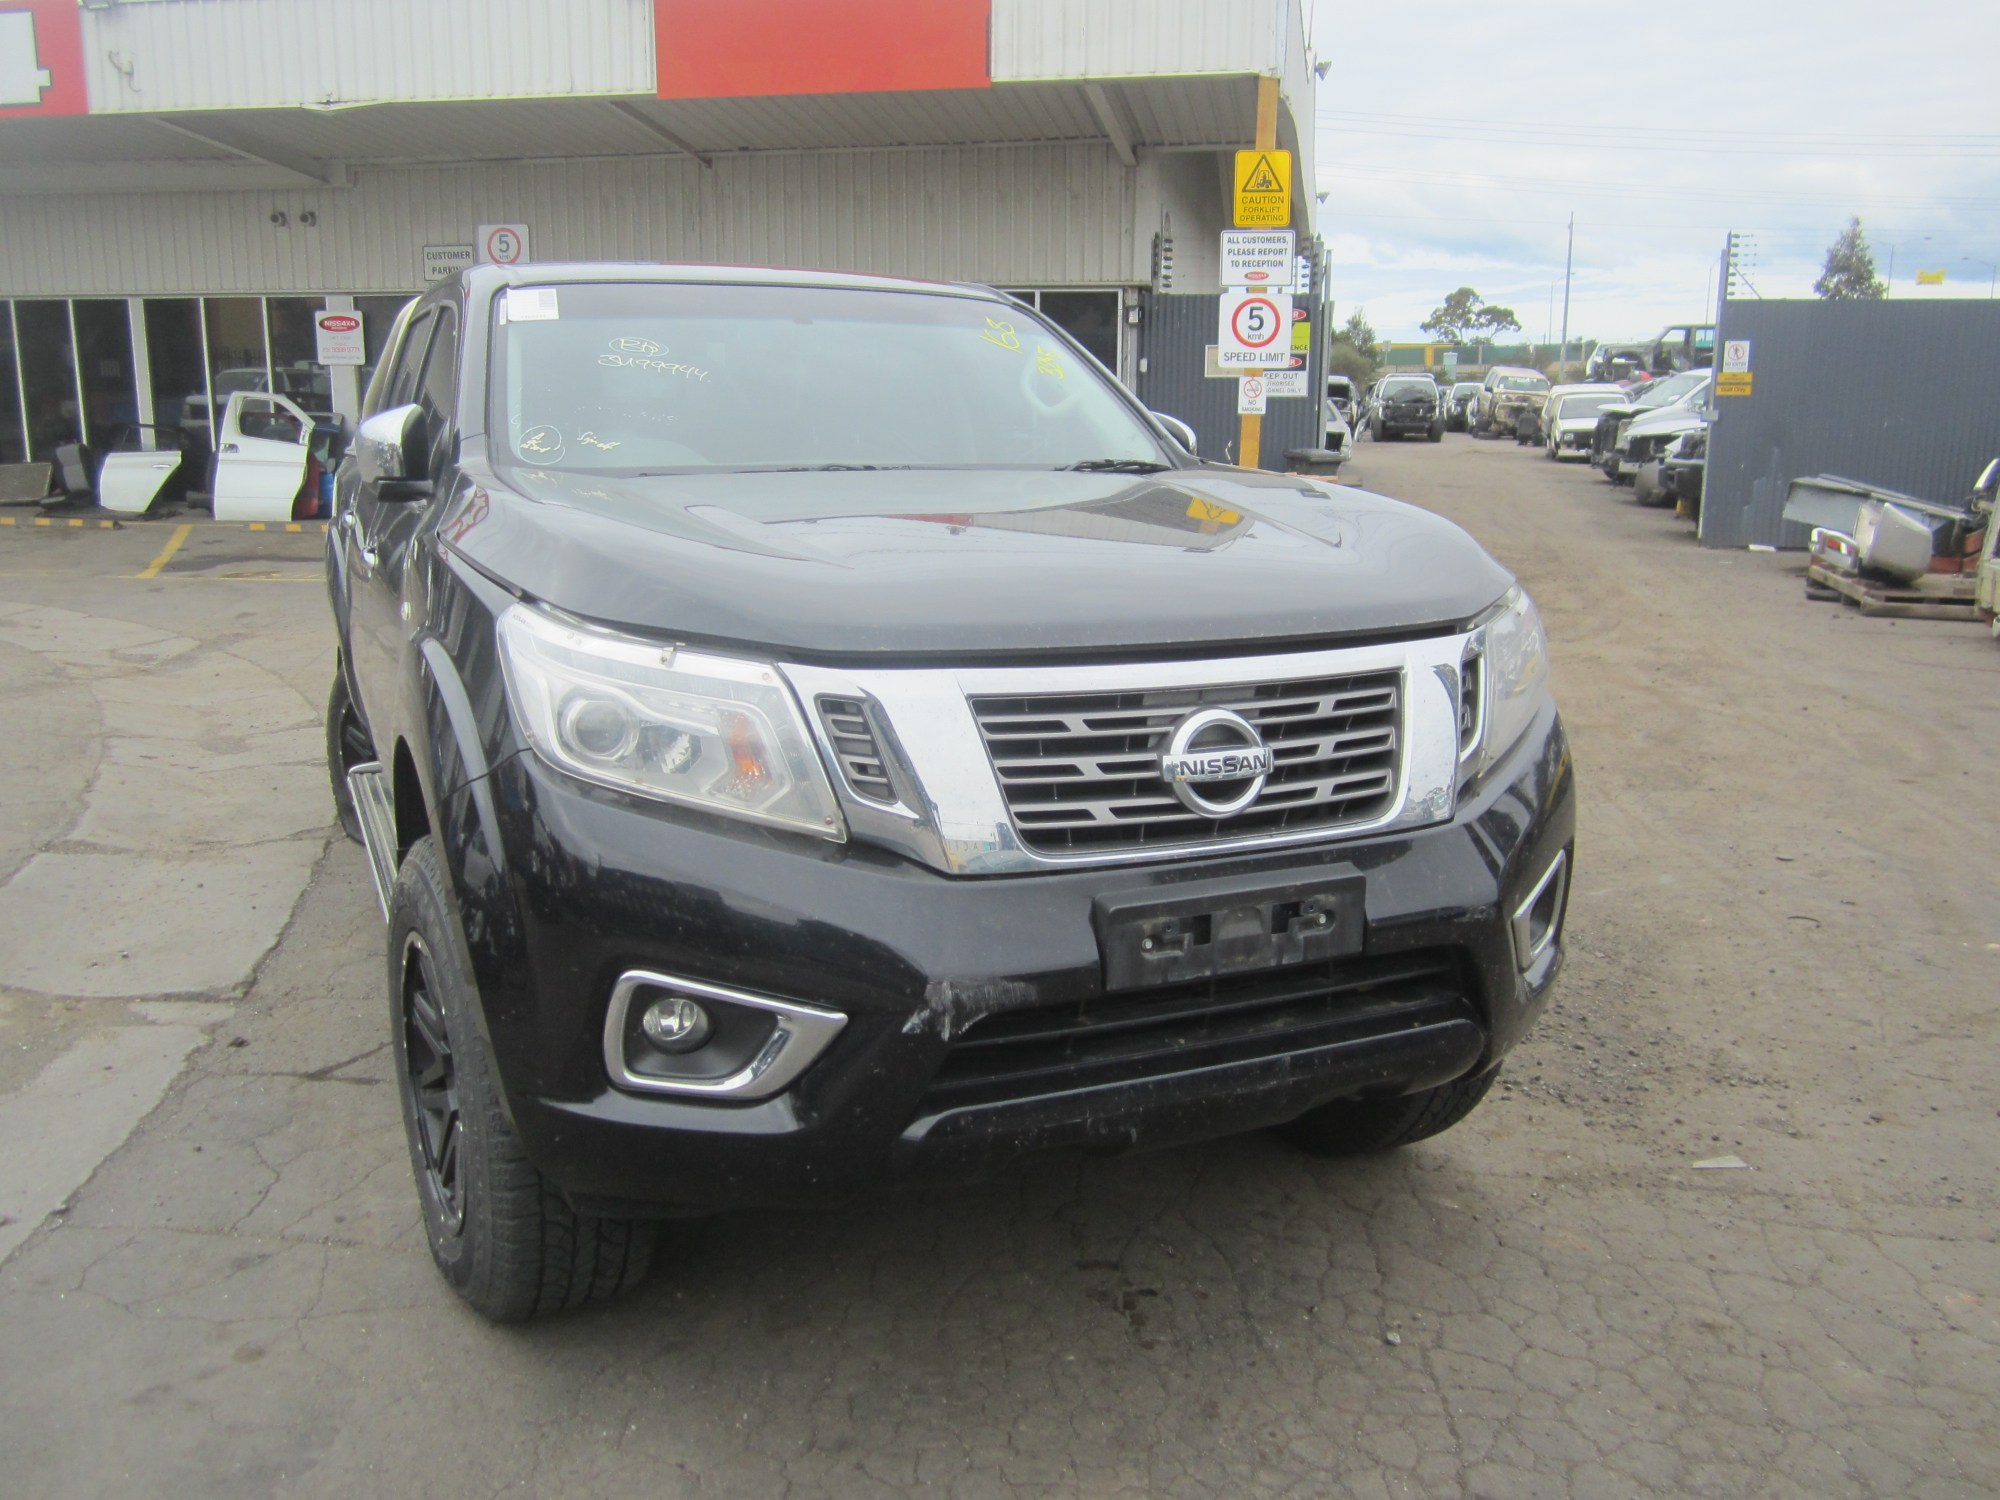 hight resolution of nissan navara d23 np300 st diesel manual 2015 wrecking